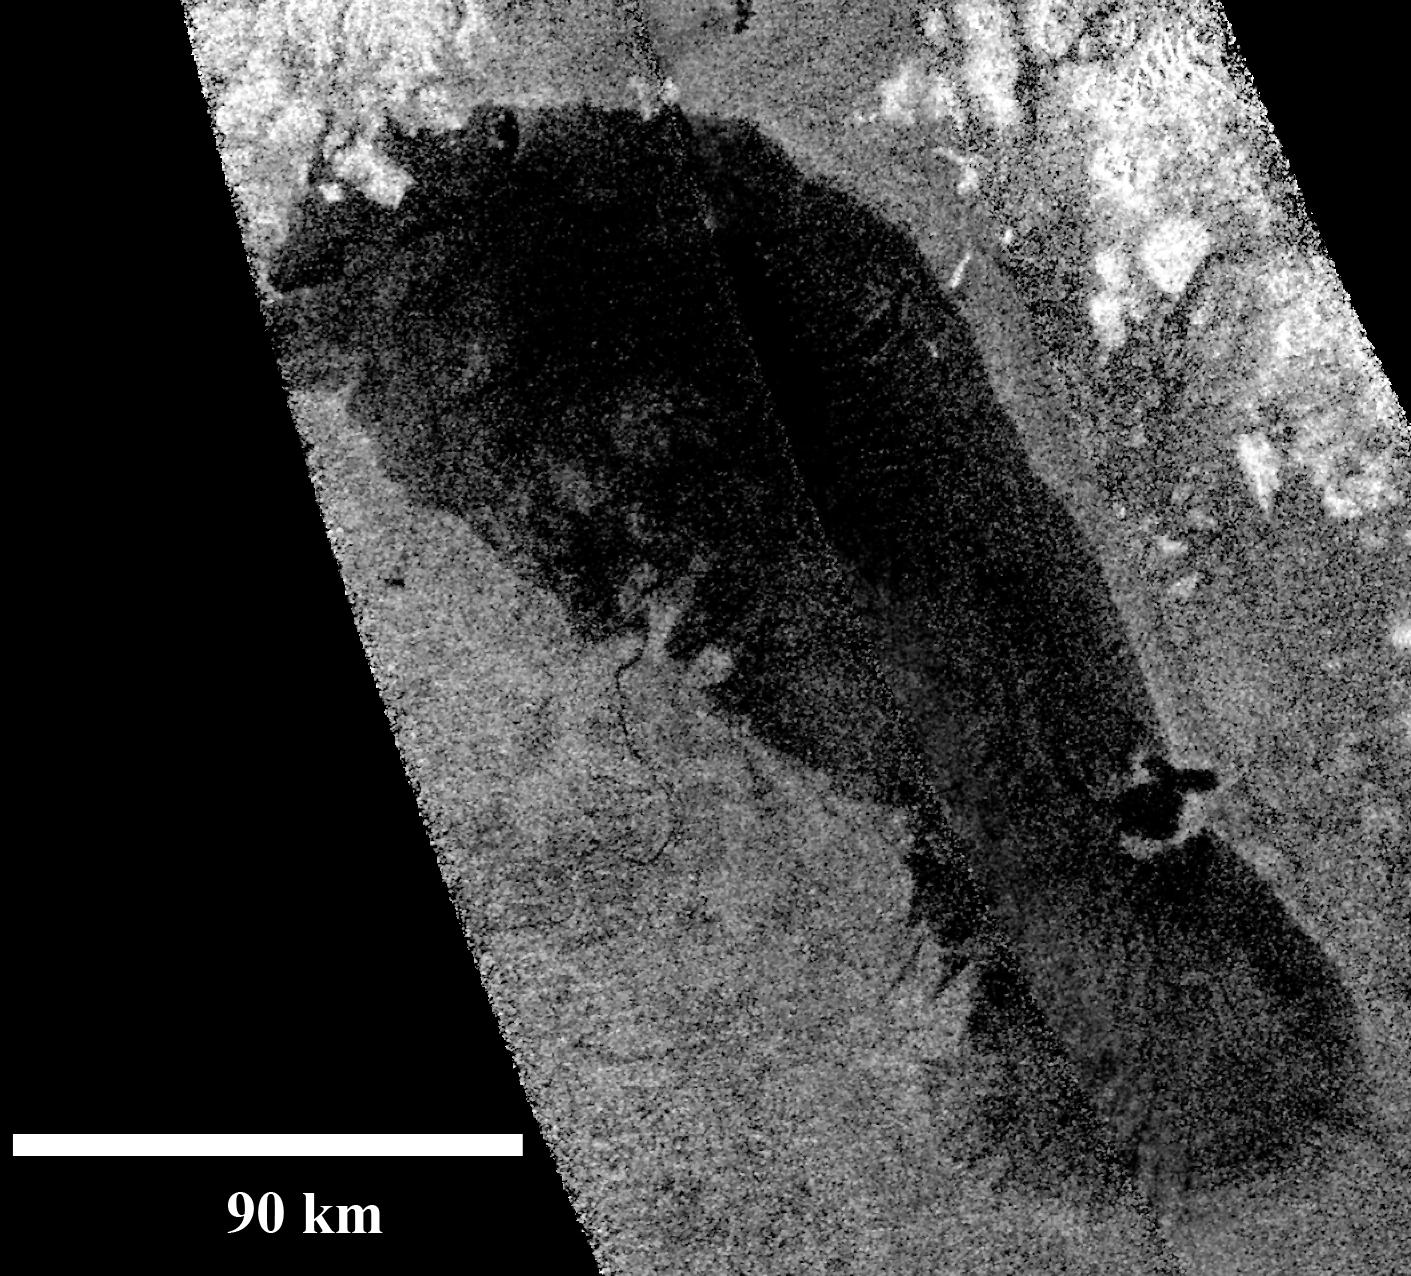 Ontario Lacus, the largest lake on the southern hemisphere of Saturn's moon Titan